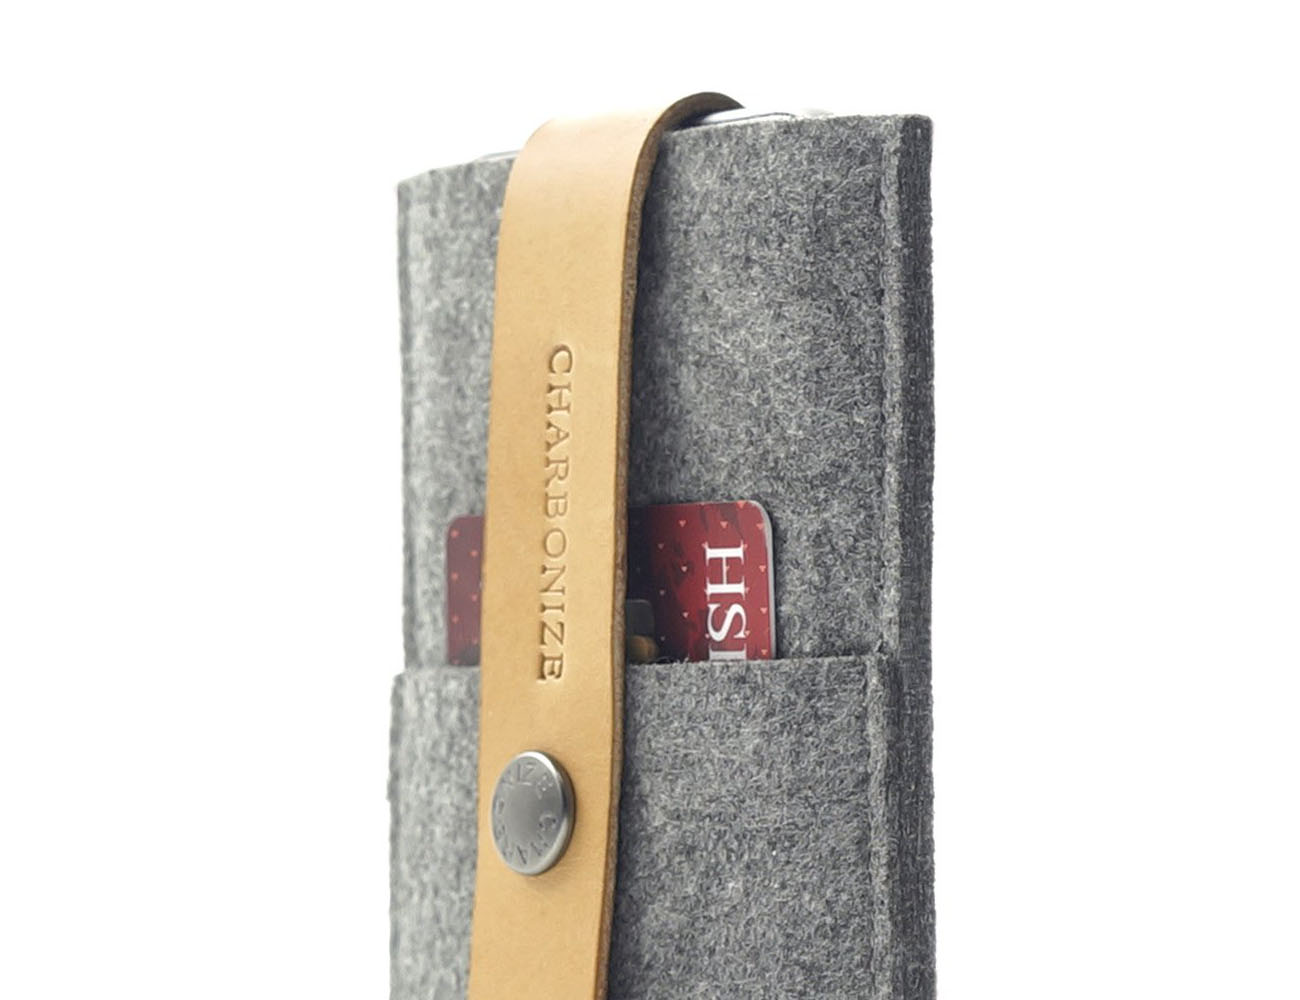 Leather & Wool Felt iPhone Wallet from CHARBONIZE